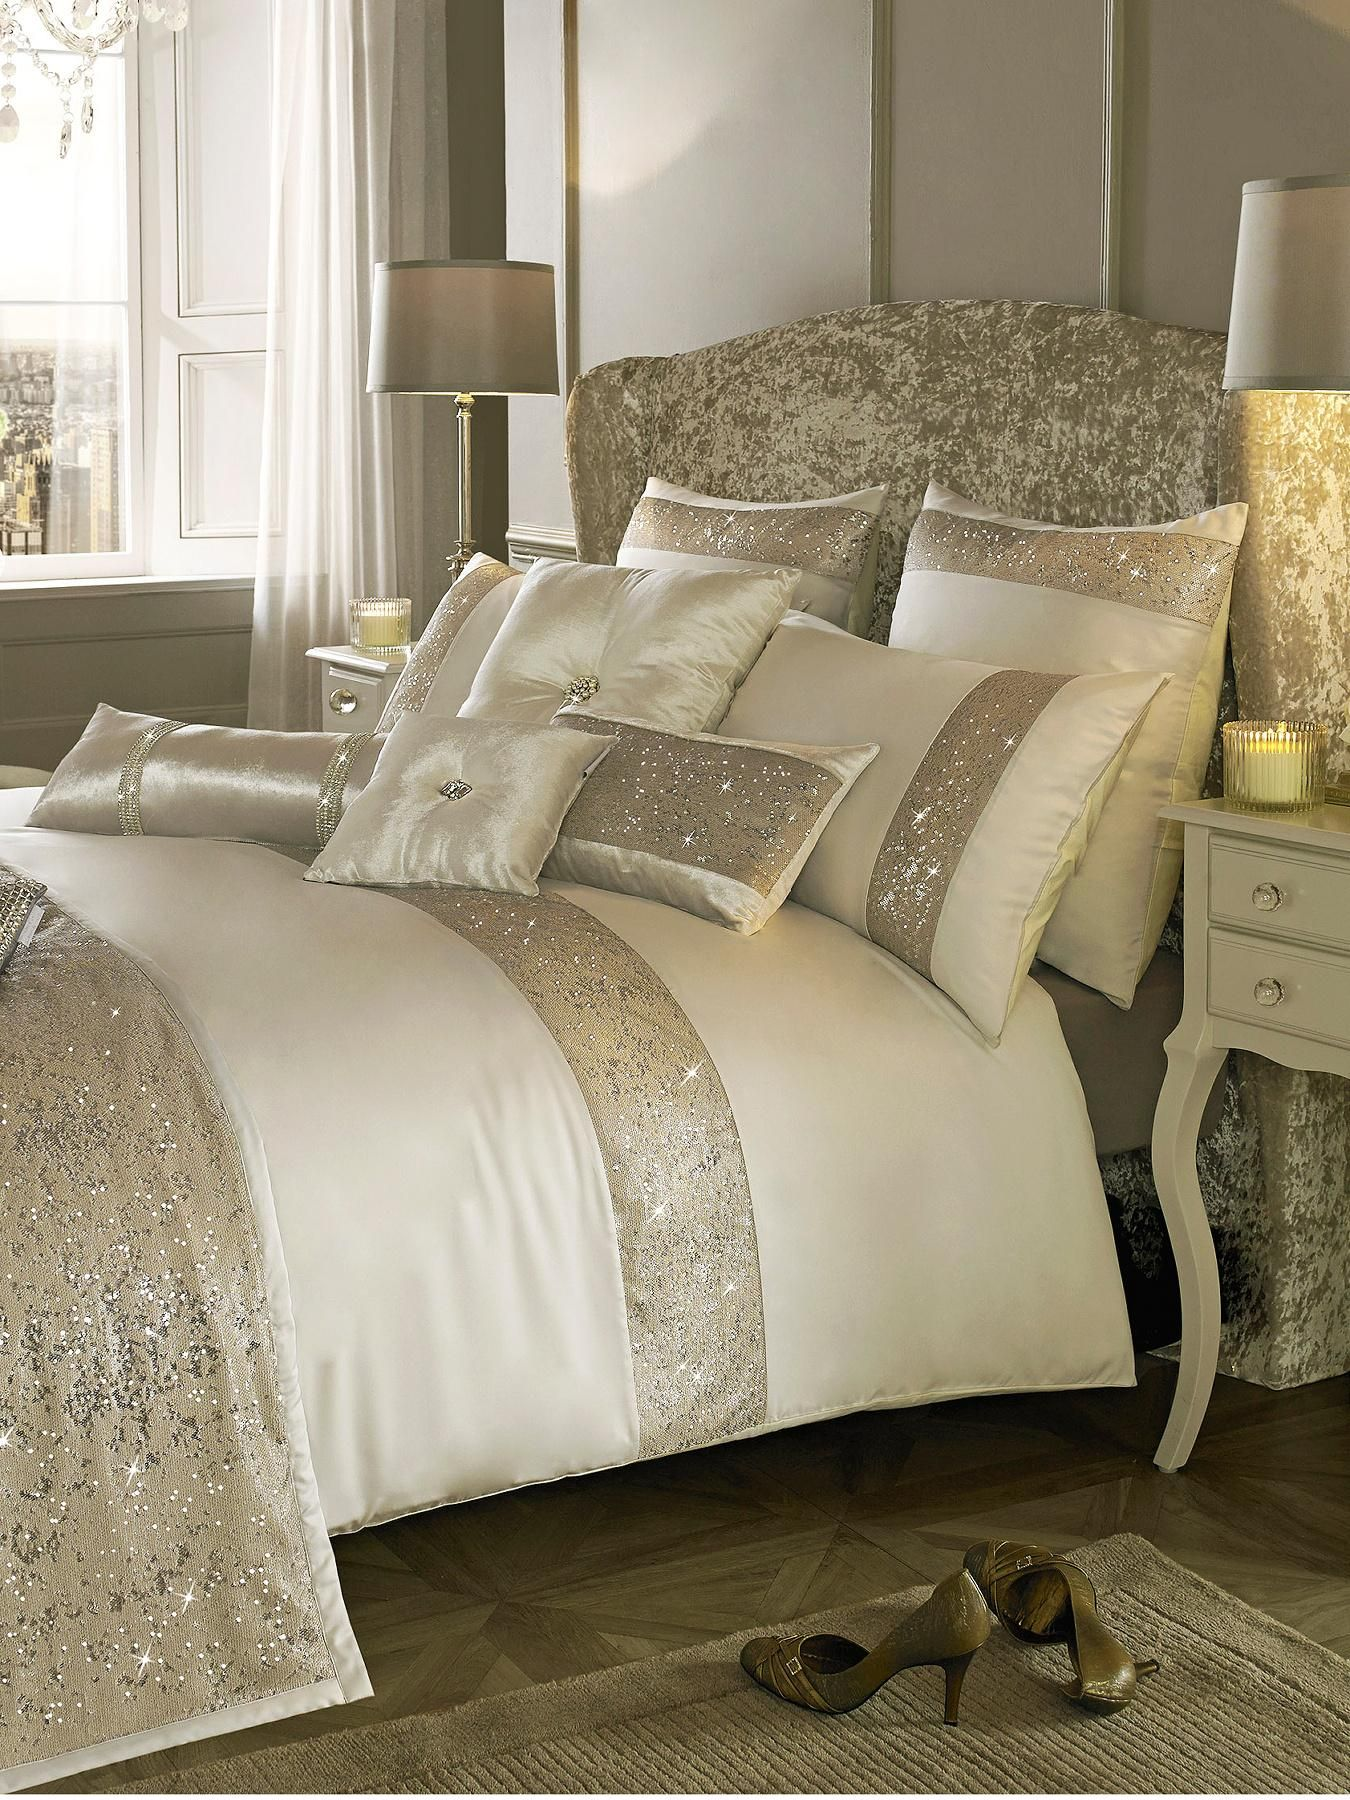 Kylie Minogue Duo Bedding Range very.co.uk My house